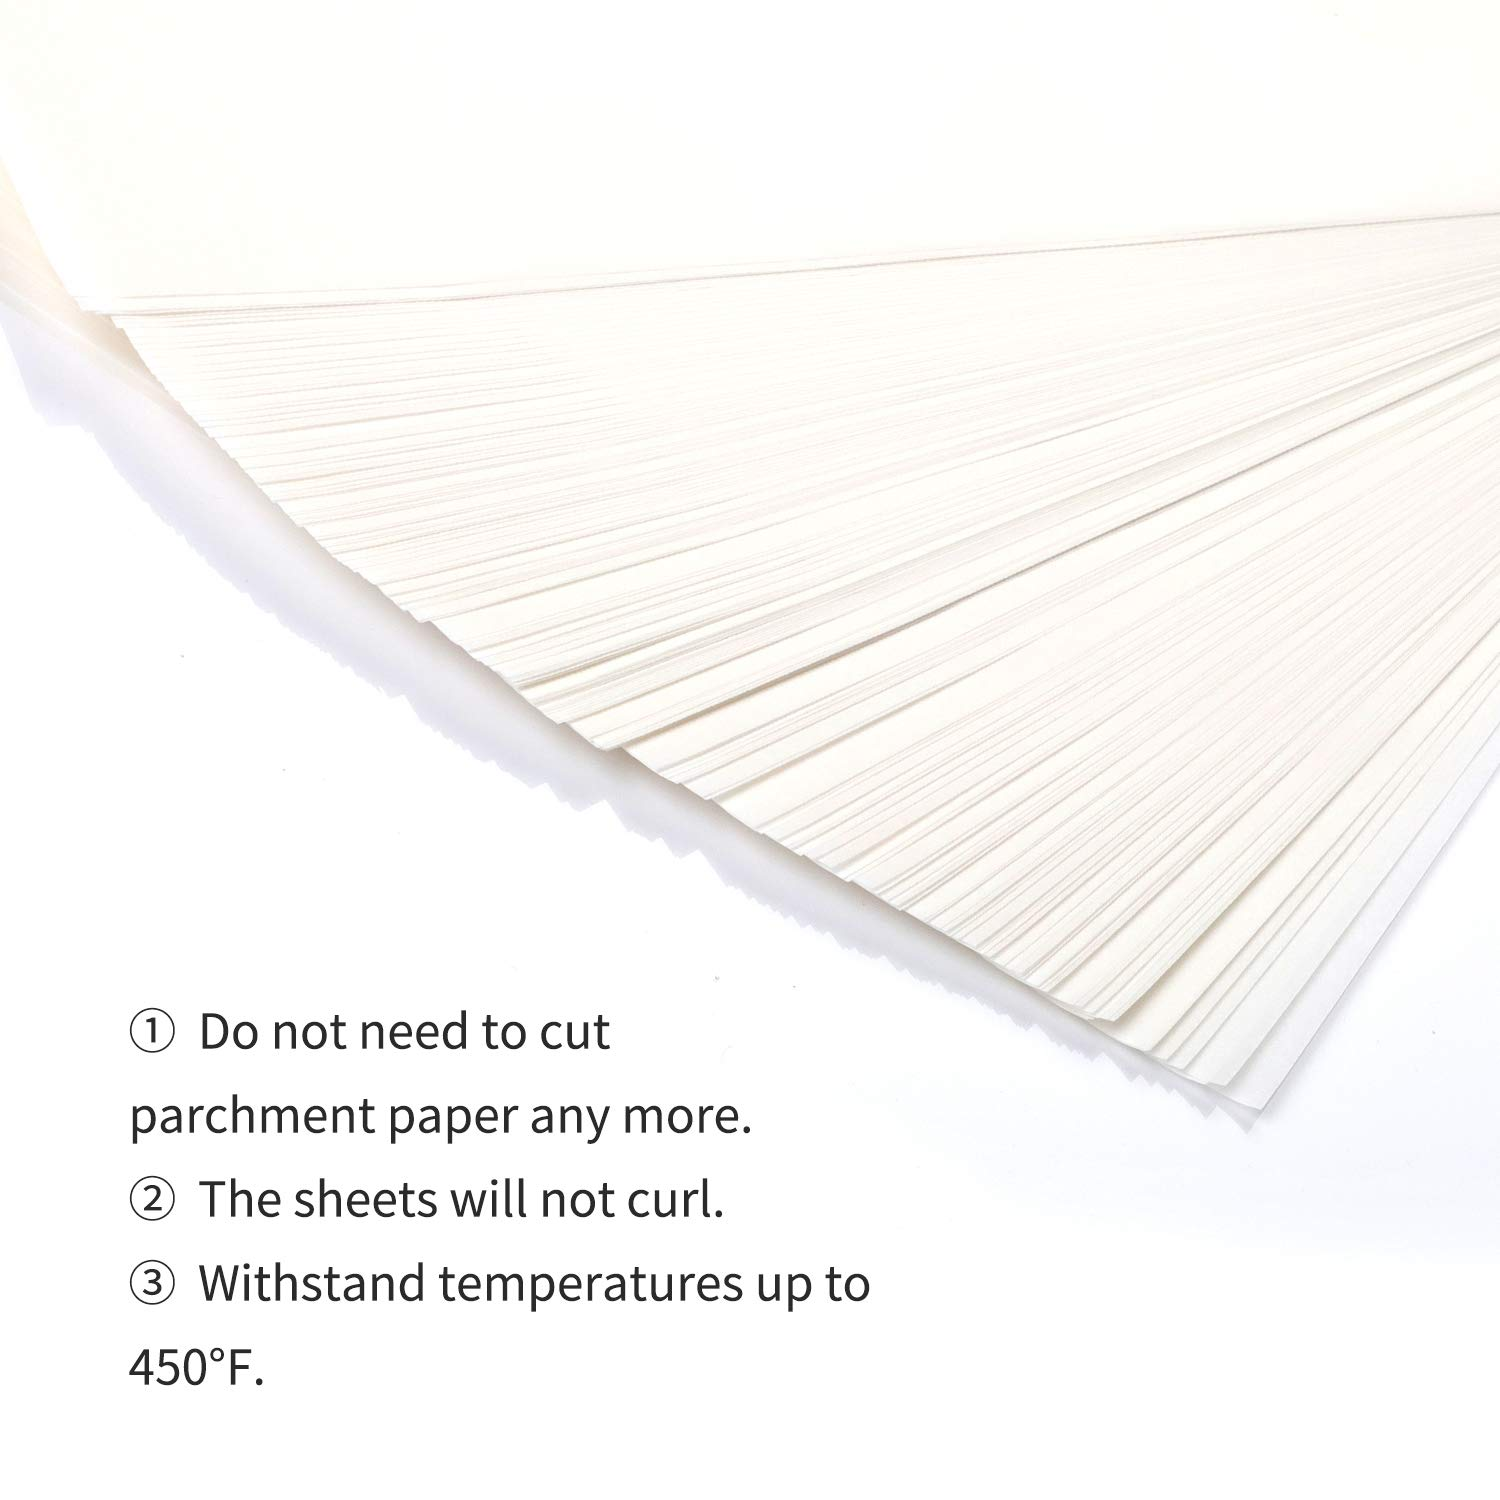 200-Pcs Parchment Paper Baking Sheets, SMARTAKE 12x16'' Non-Stick Precut Baking Parchment, Perfect for Baking Grilling Air Fryer Steaming Bread Cup Cake Cookie and More (White) by SMARTAKE (Image #4)